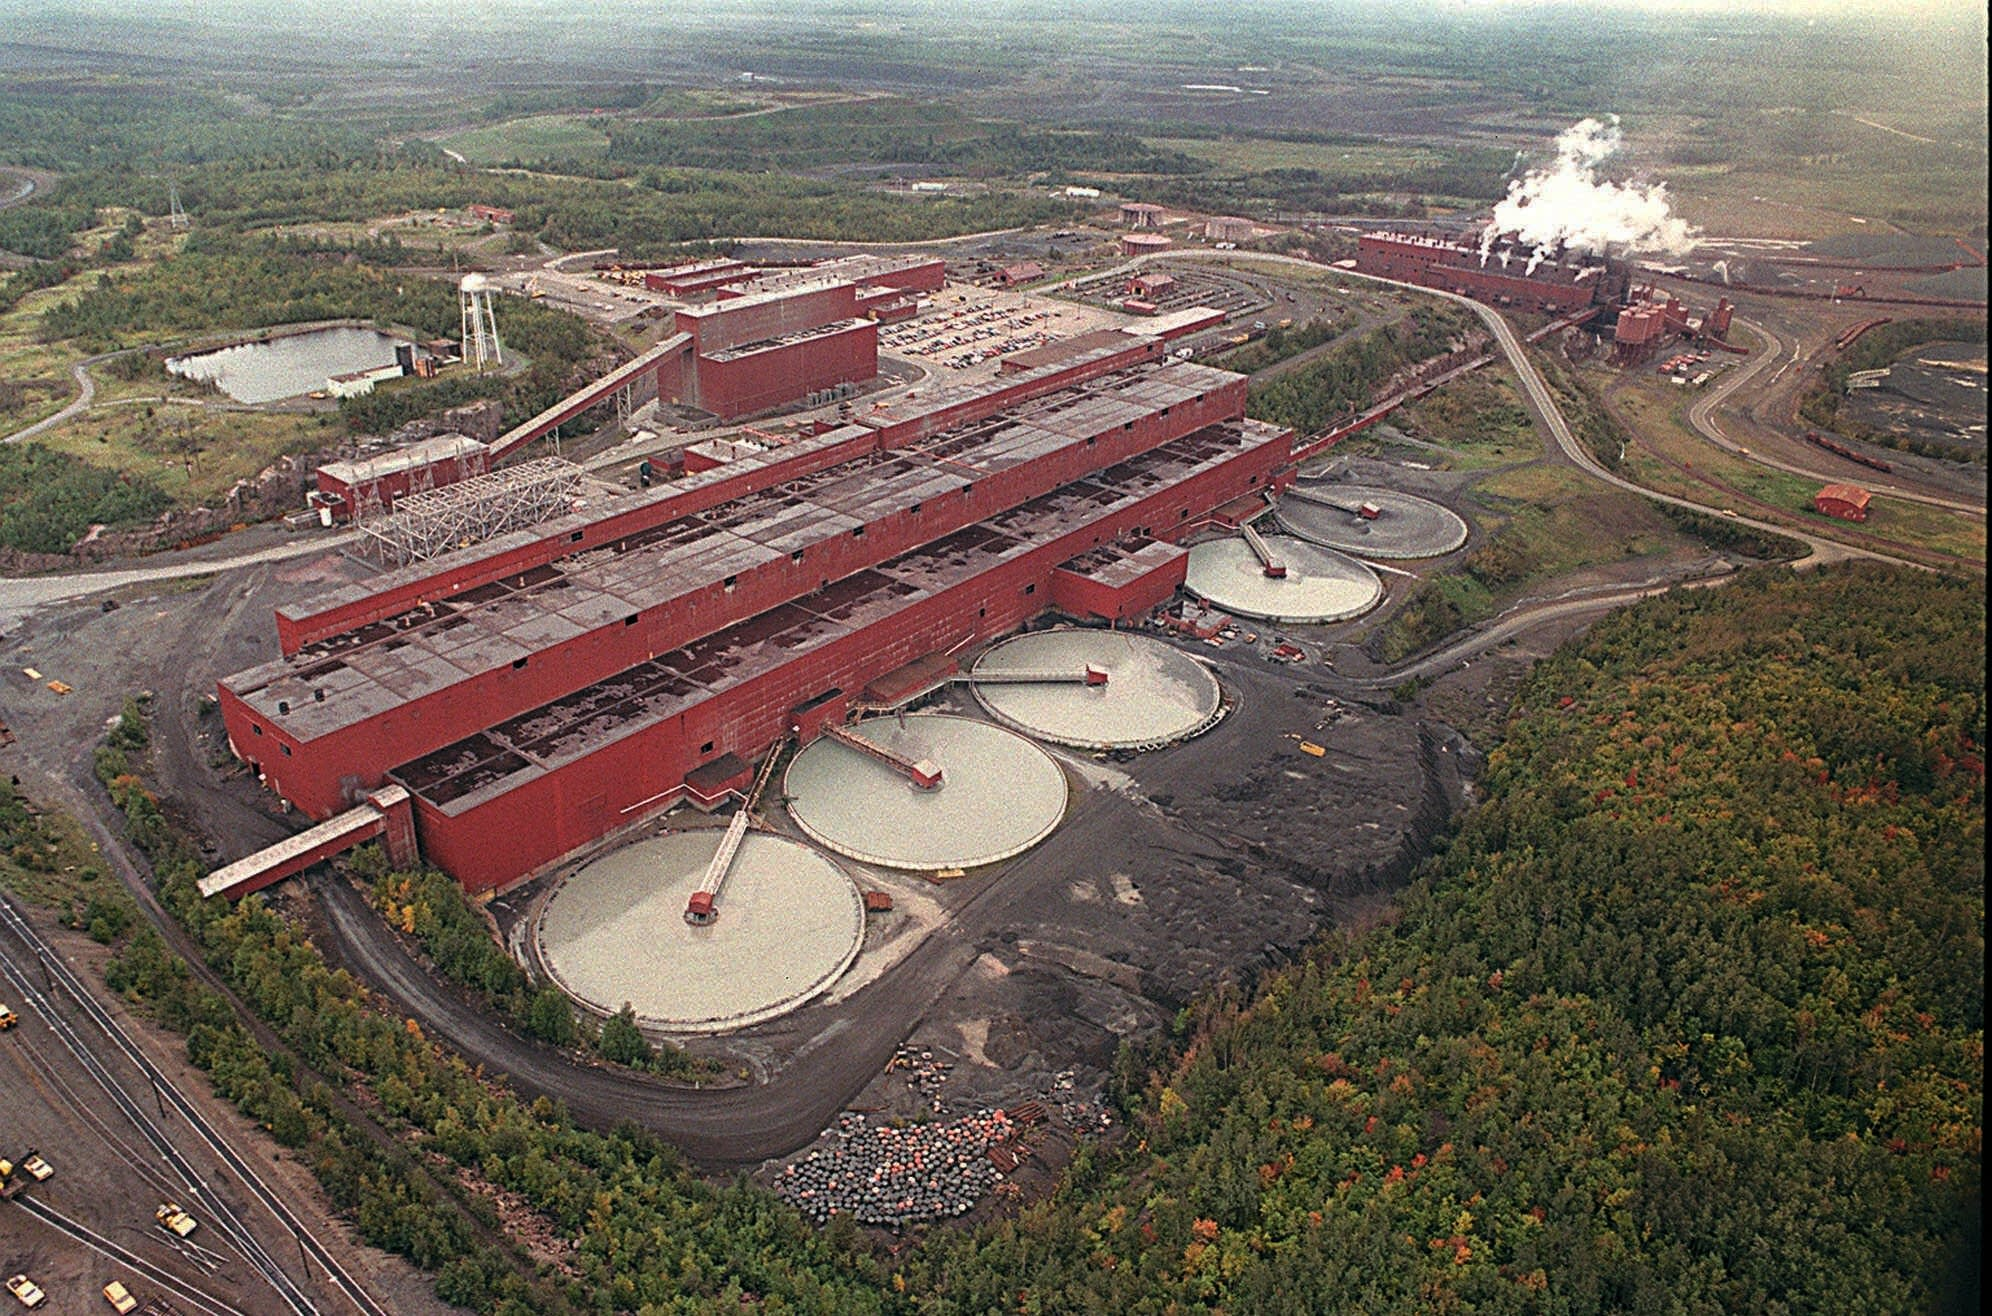 The LTV Steel processing plant,which was taken over by PolyMet Mining Corp.